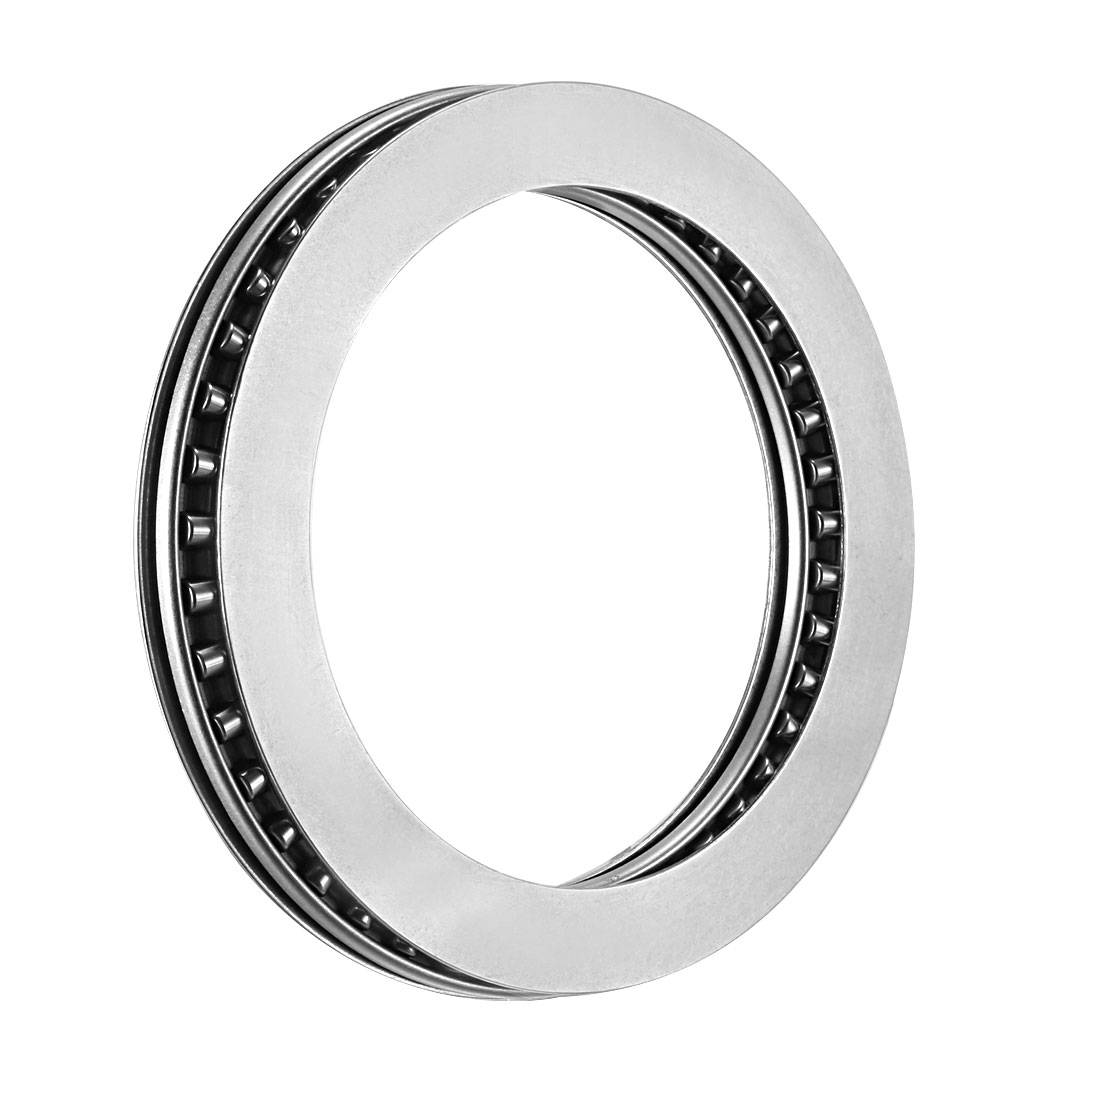 Uxcell Needle Roller Thrust Bearings With Bearing Washers AXK+2AS 8mm-80mm Bore Dia 19mm-105mm OD 4mm-6mm Total Thickness